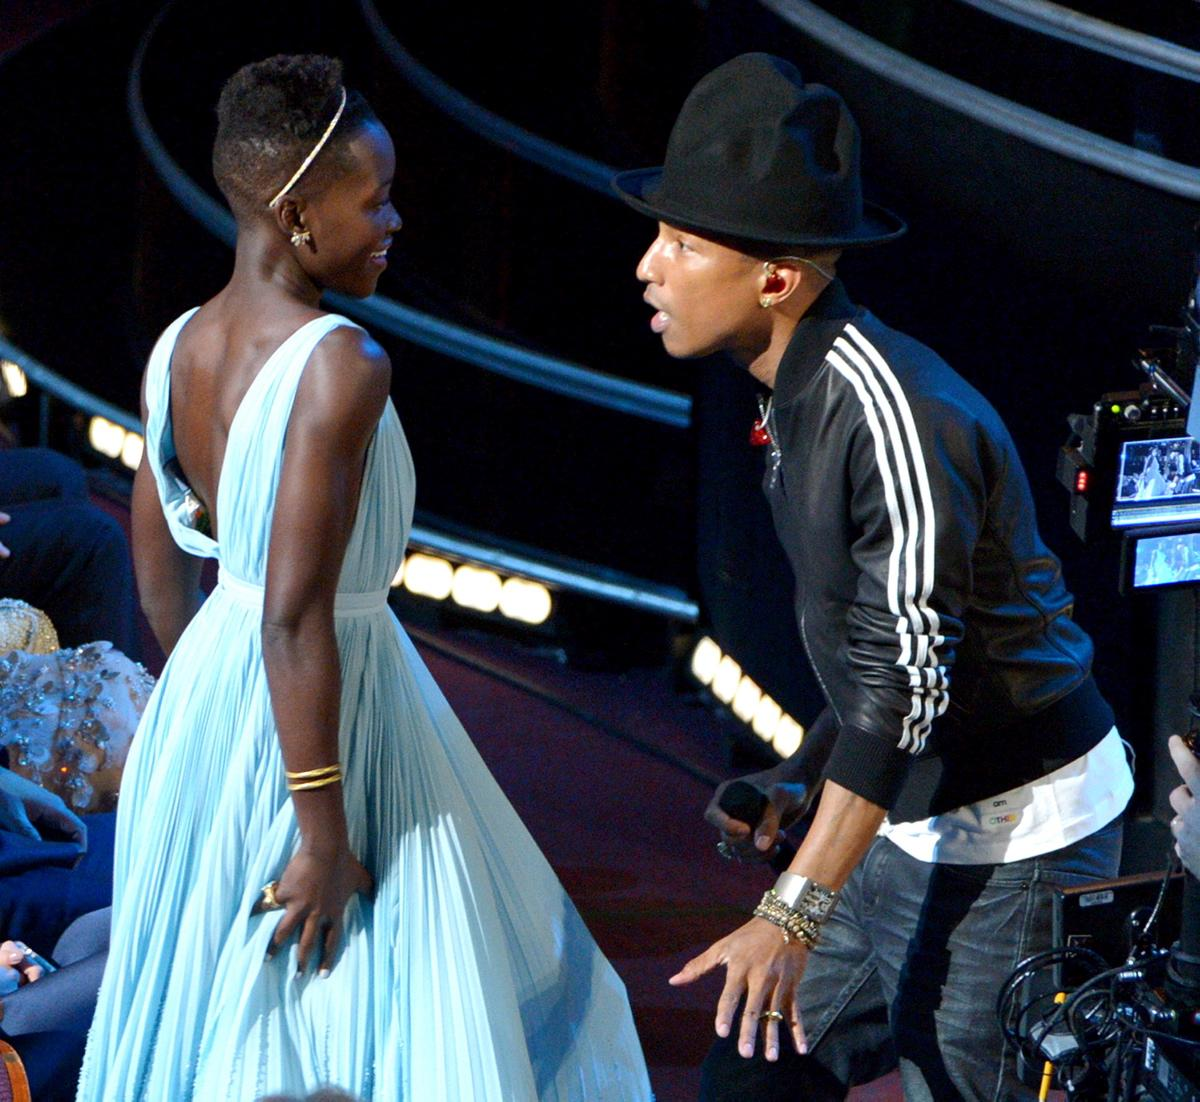 Lupita Nyongo dances with Pharrell Williams at the 2014 Oscars (image courtesy of www.nydailynews.com )